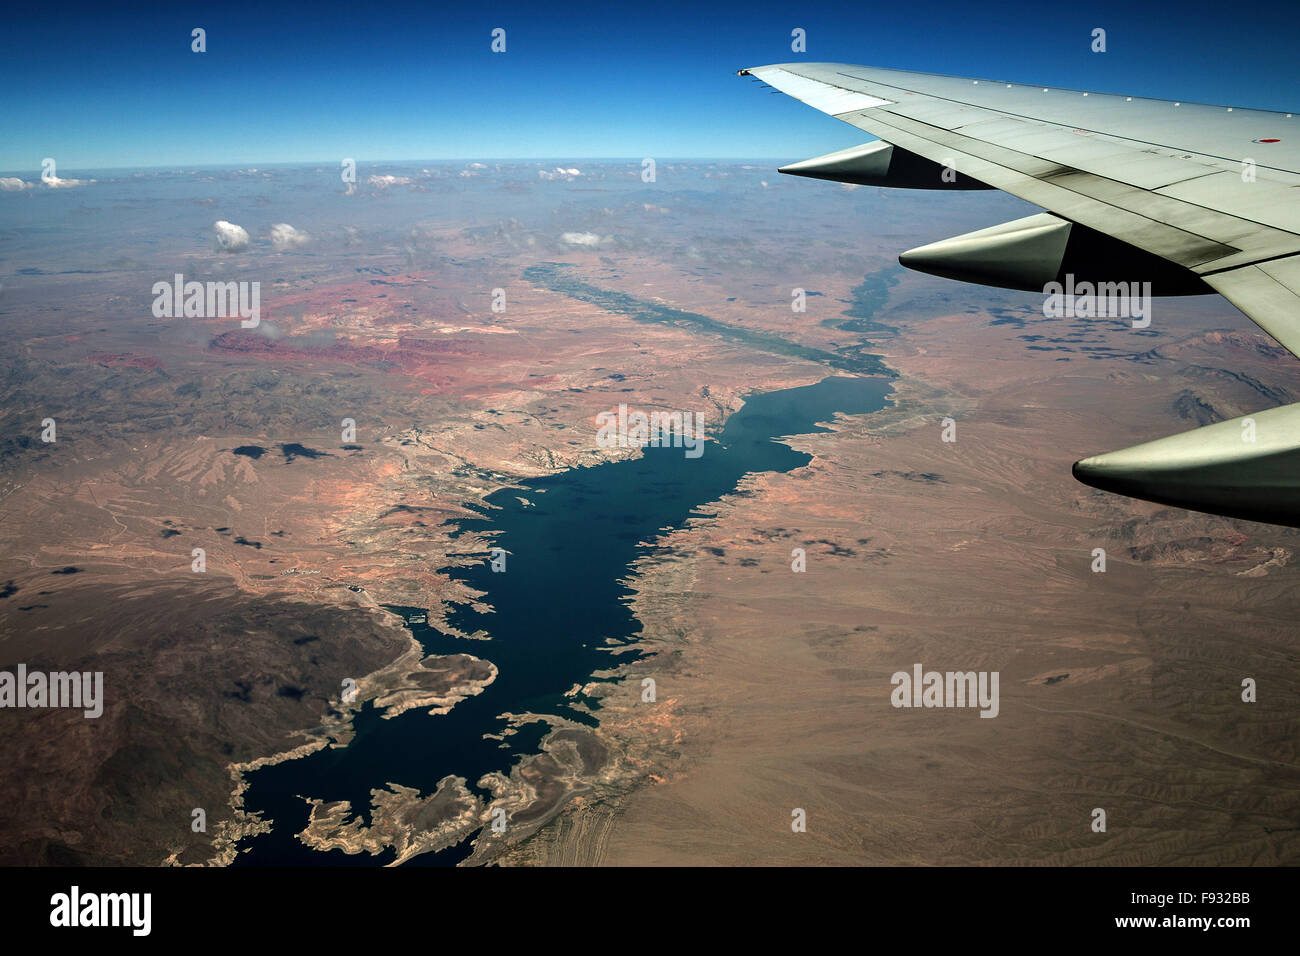 Lake Mead, view from plane, Nevada, USA Stock Photo